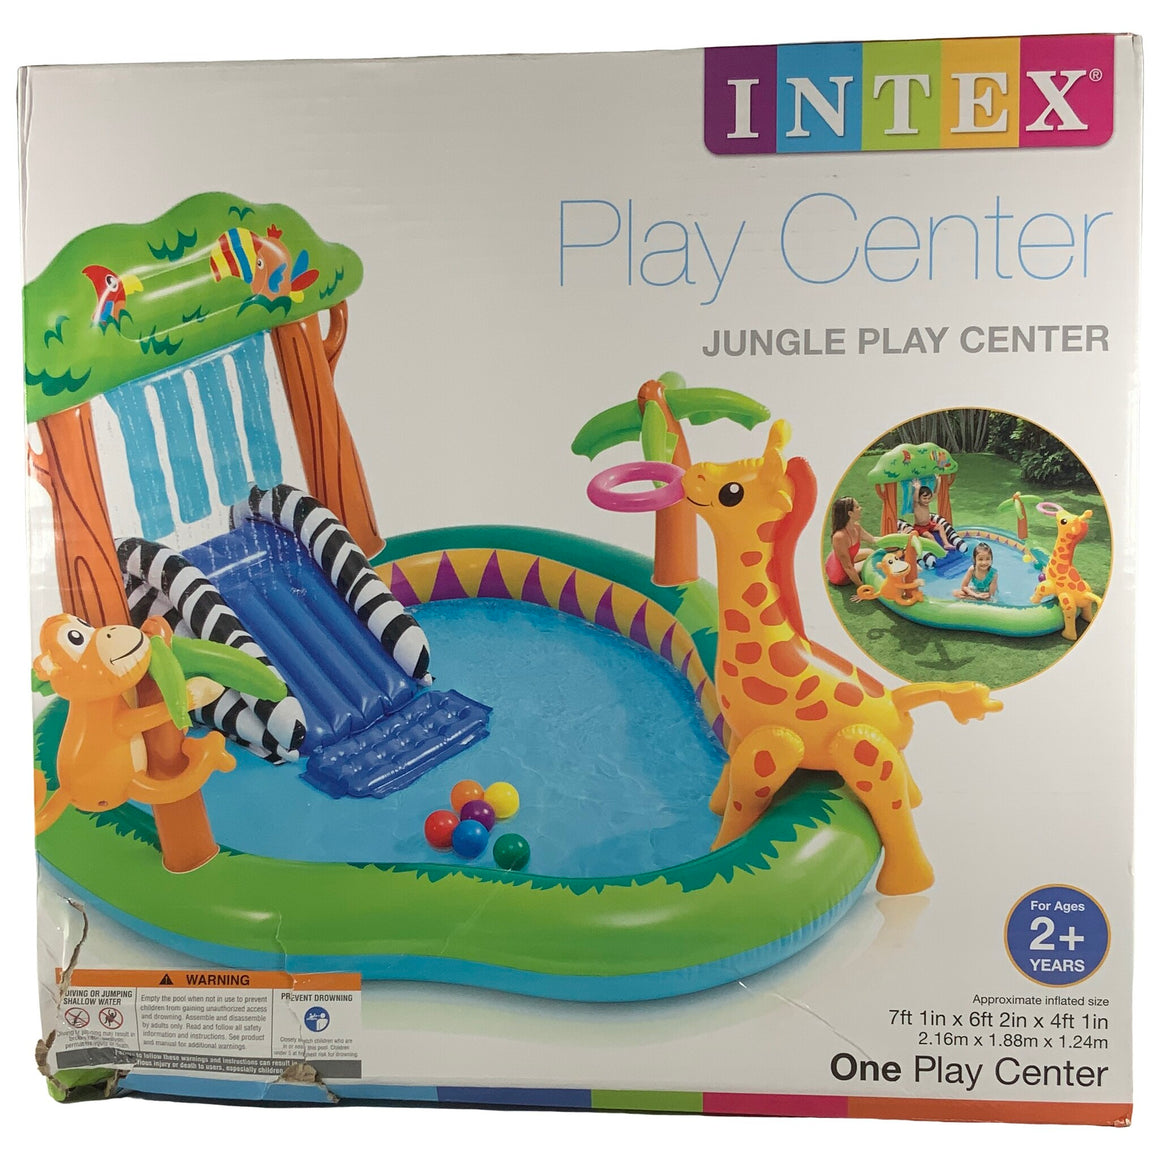 Intex - Jungle Play Cnter